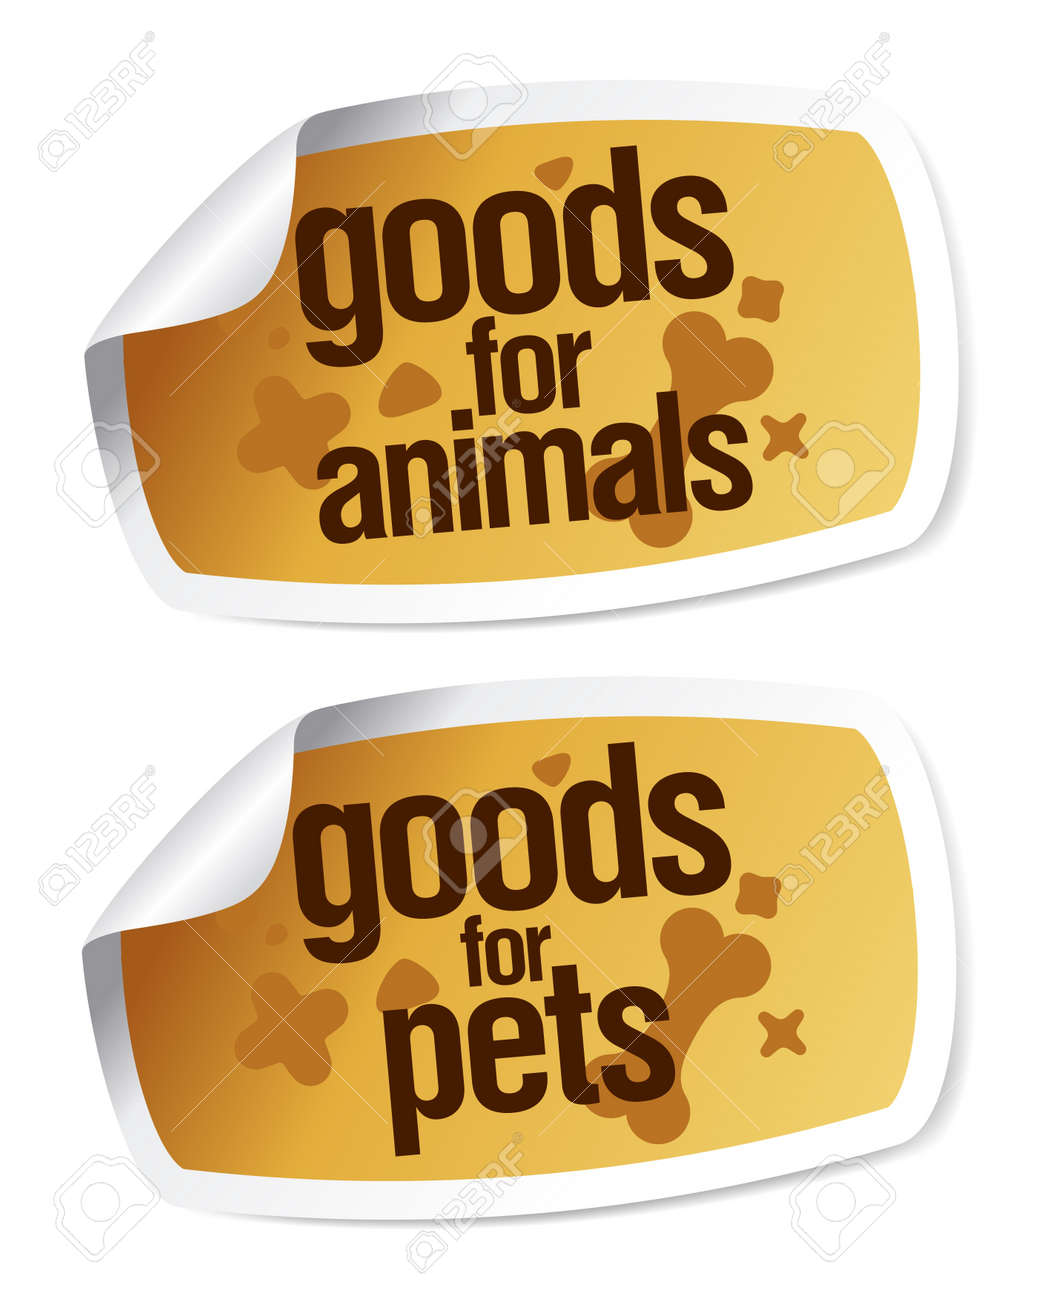 Goods for pets stickers set Stock Vector - 13403500